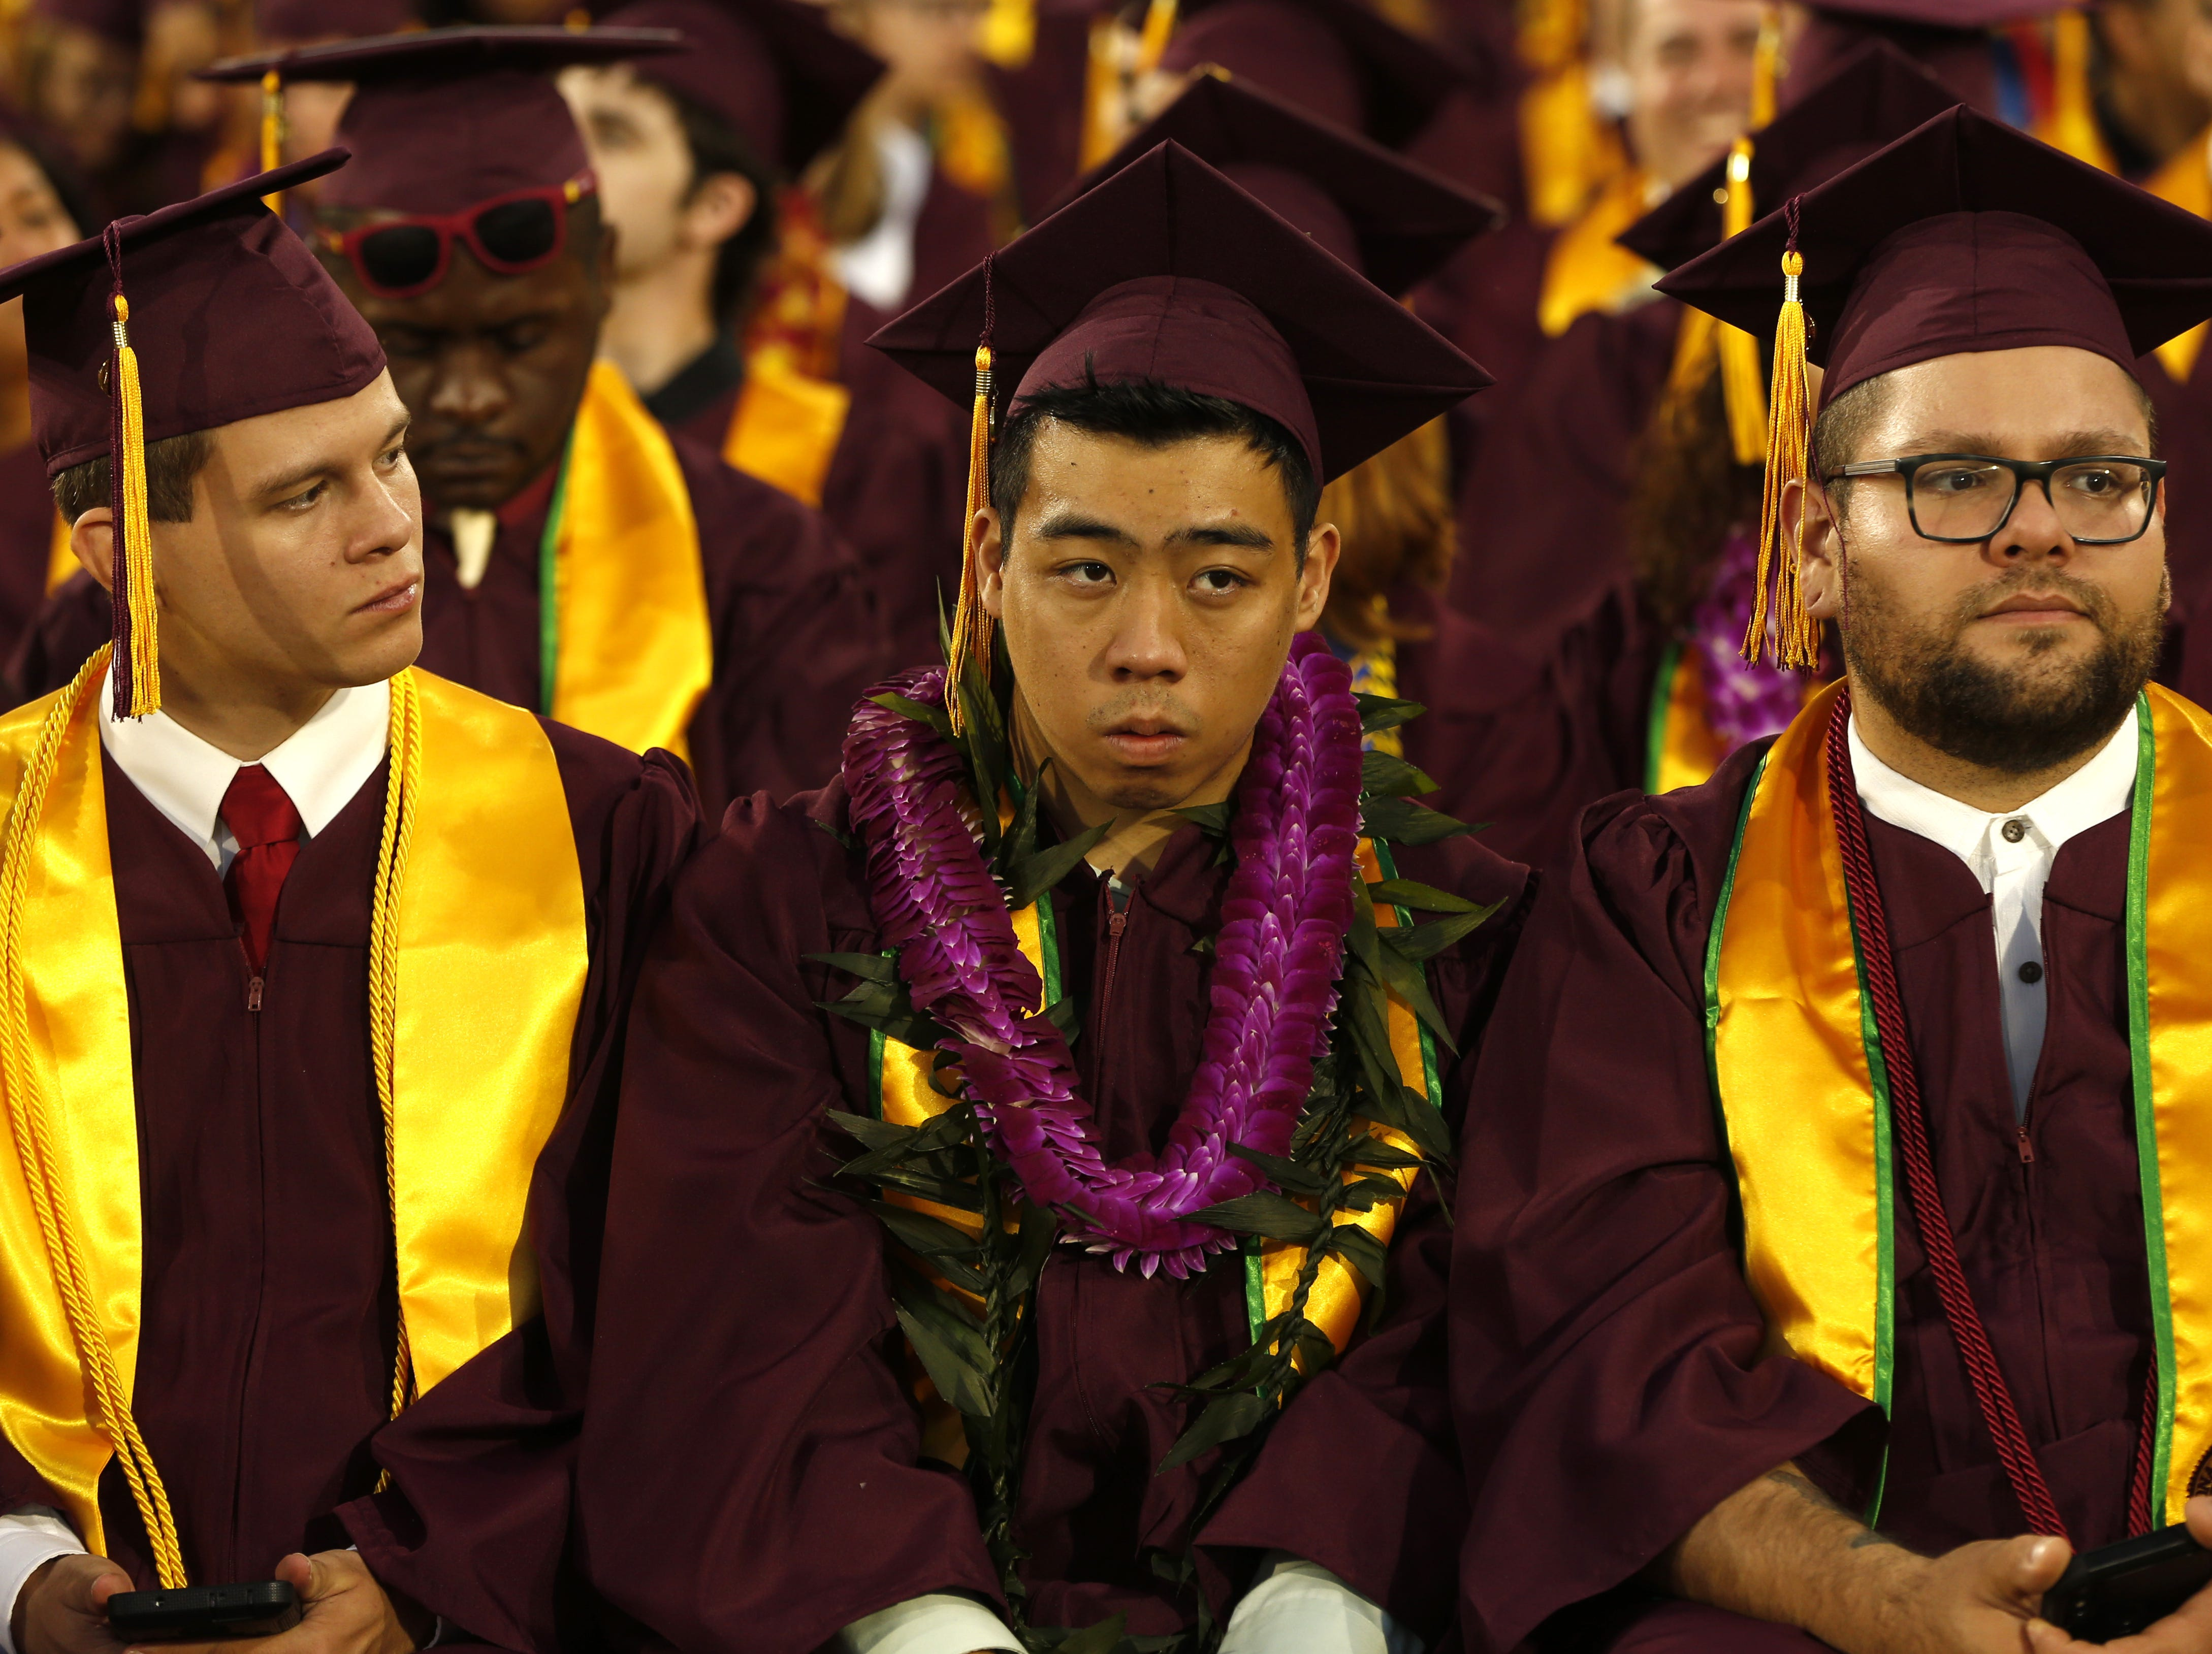 ASU graduates' Joseph Ripsam (L), Dylan La and Dylan Perez wait before ASU's Undergraduate Commencement at Sun Devil Stadium in Tempe, Ariz. on May 6, 2019.